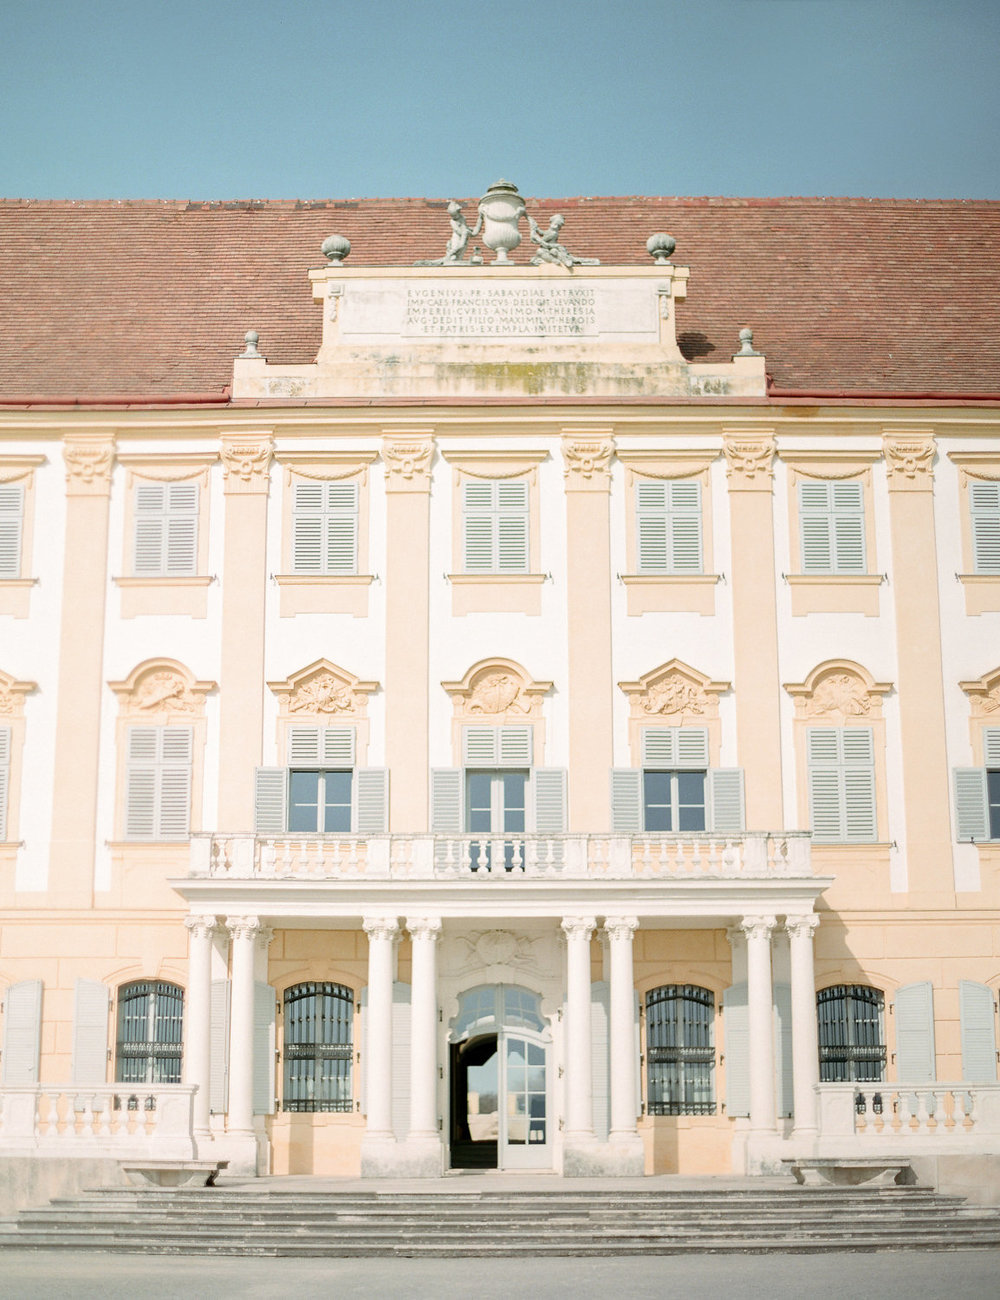 destination-wedding-vienna-austria-styled-schloss-hof-palace-highemotionweddings-nikolbodnarova (75).JPG